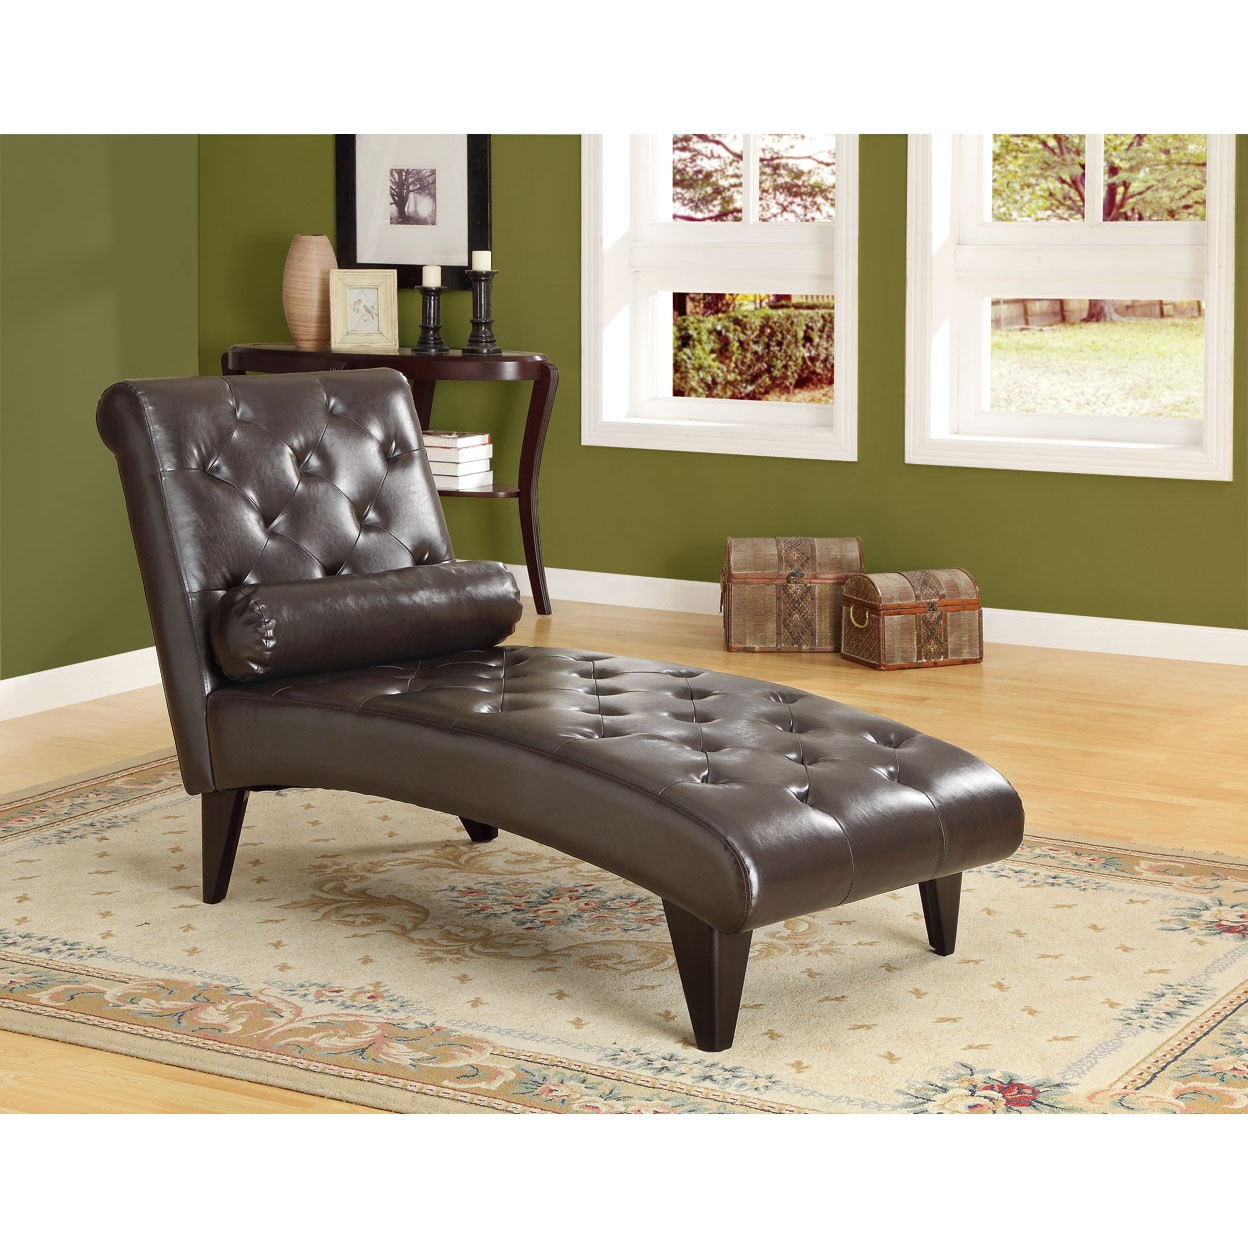 Dark brown leather look chaise lounger with decorative for Chaise decorative